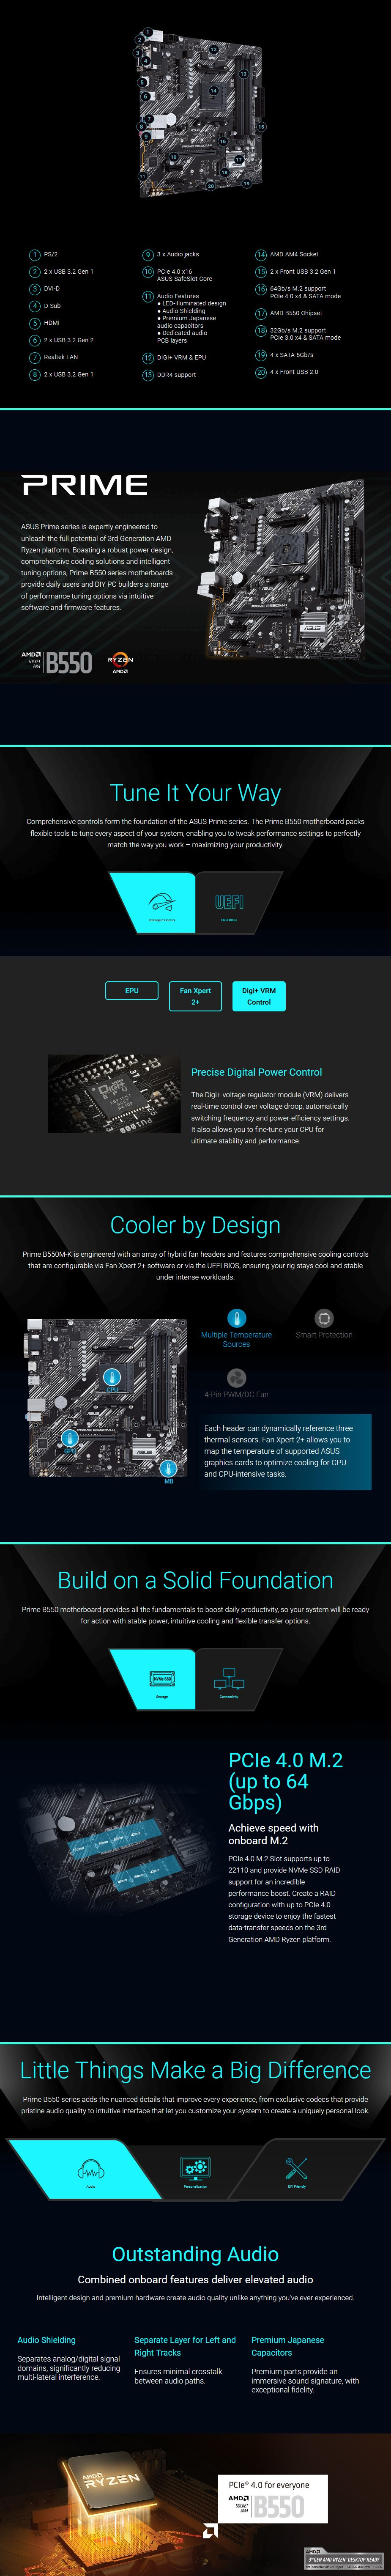 ASUS PRIME B550M-K AM4 Micro-ATX Motherboard - Overview 1